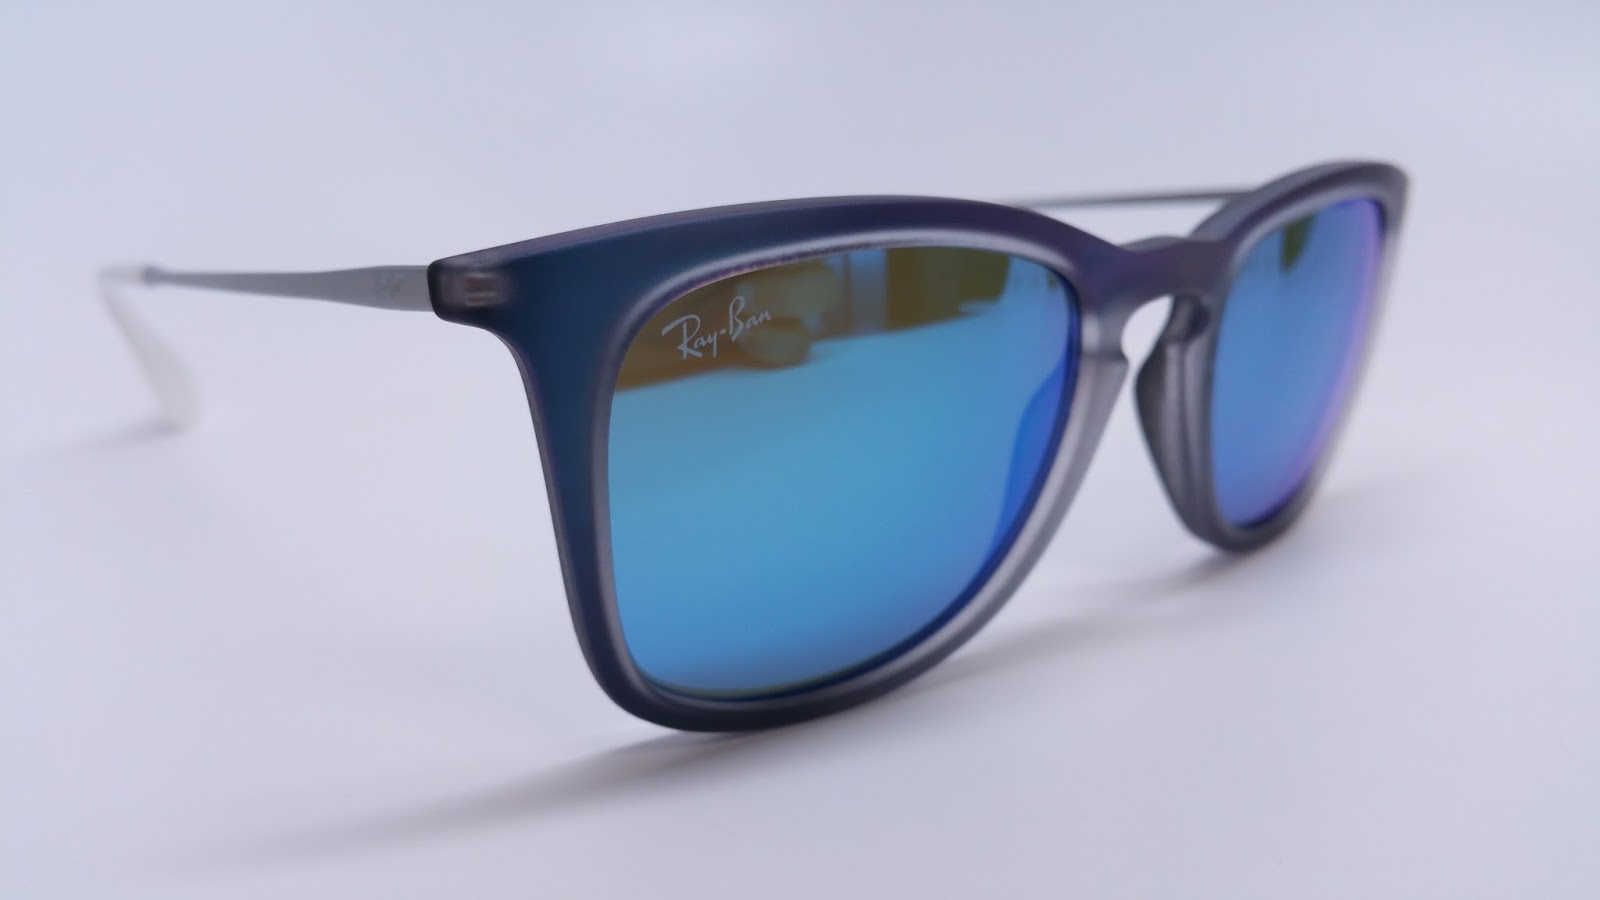 6e43dab91a Ray-Ban RB 4221 6170 55 Shot Blue Rubber Sunglasses